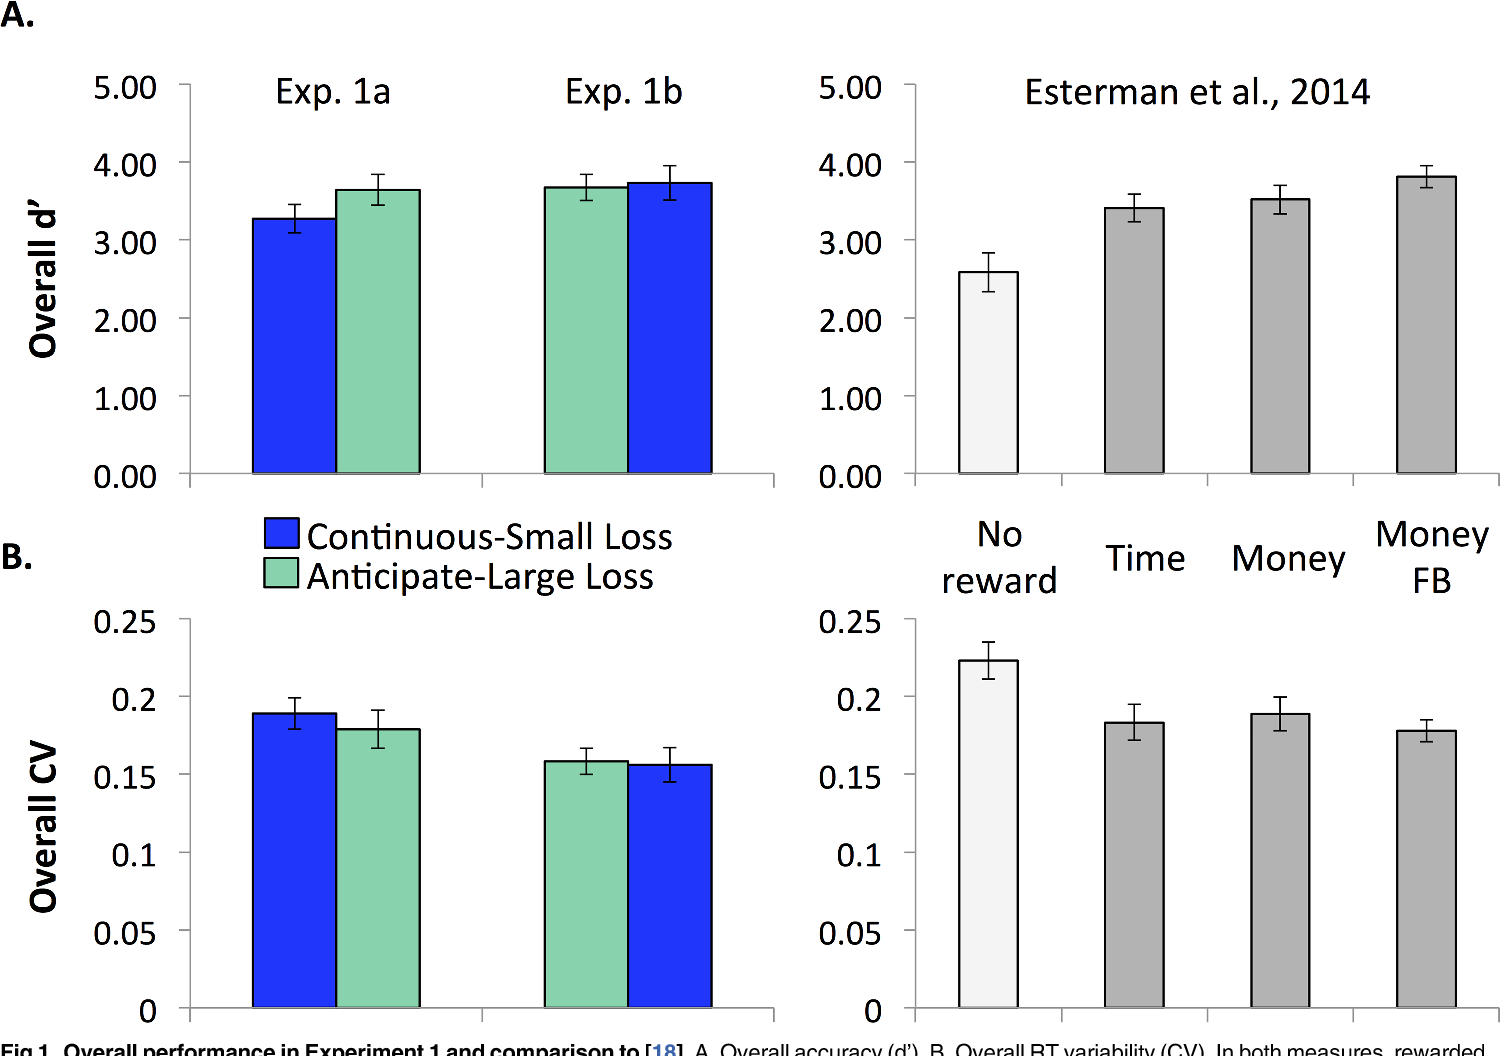 Fig 1. Overall performance in Experiment 1 and comparison to [18]. A. Overall accuracy (d'). B. Overall RT variability (CV). In both measures, rewarded performance exceeds non-rewarded performance (higher d' and lower CV).